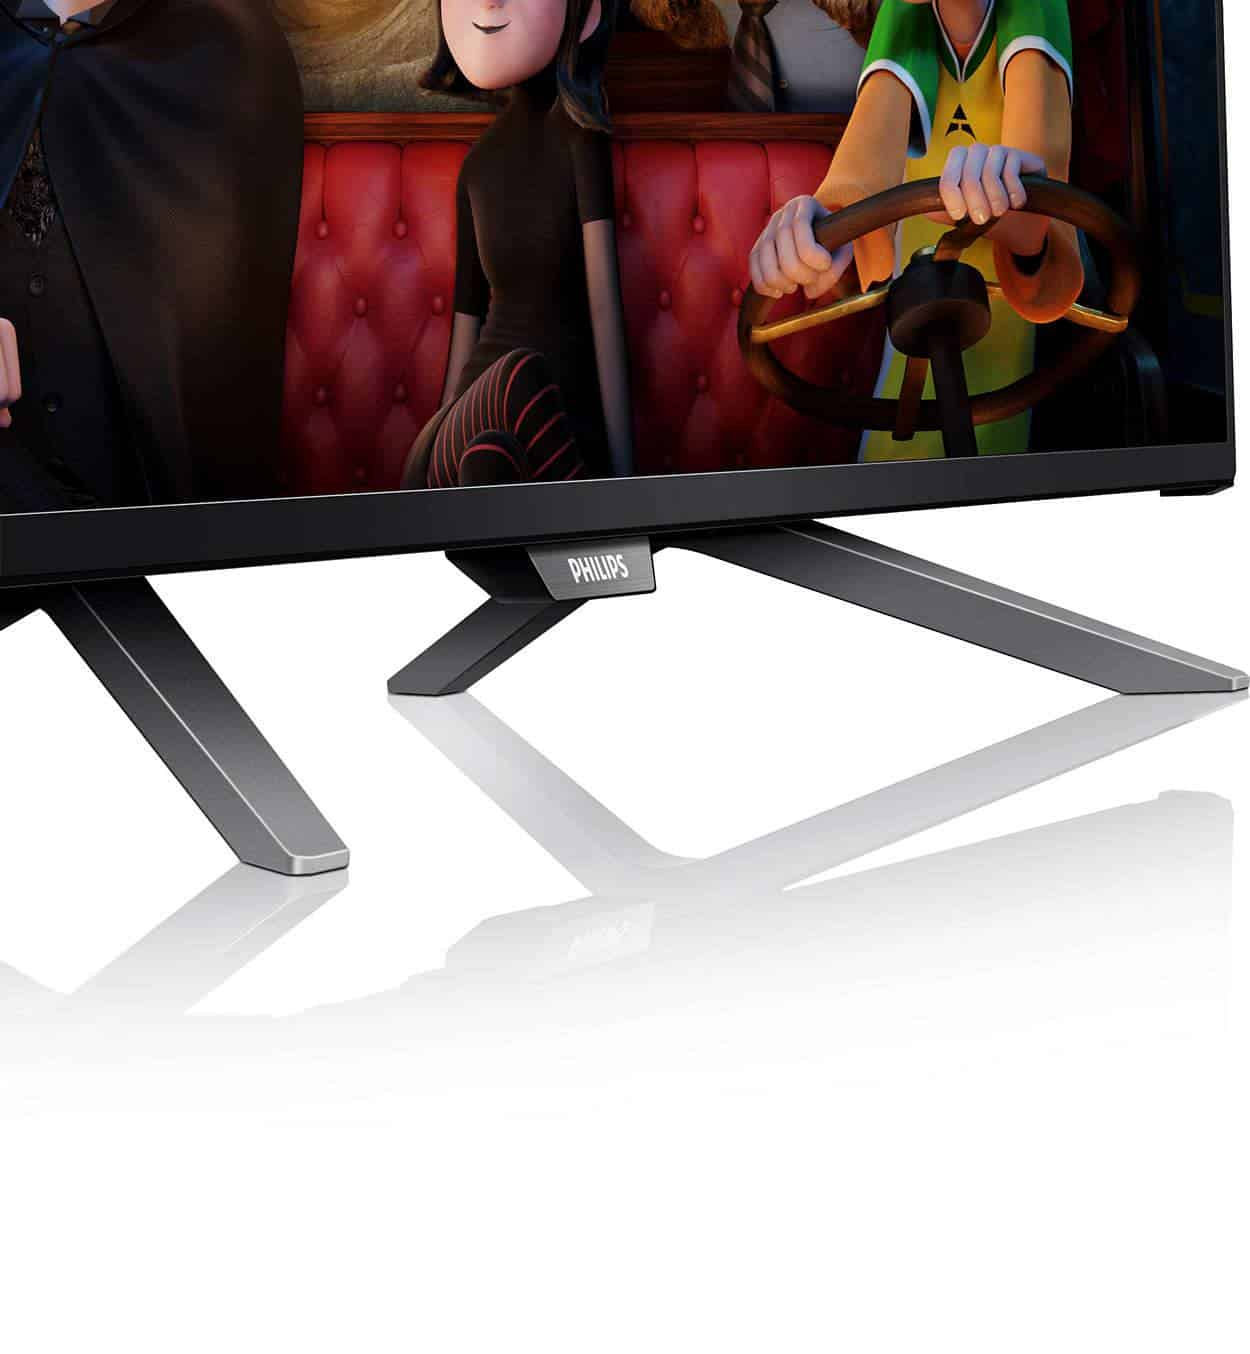 Philips 6000 series Google Cast TVs 3